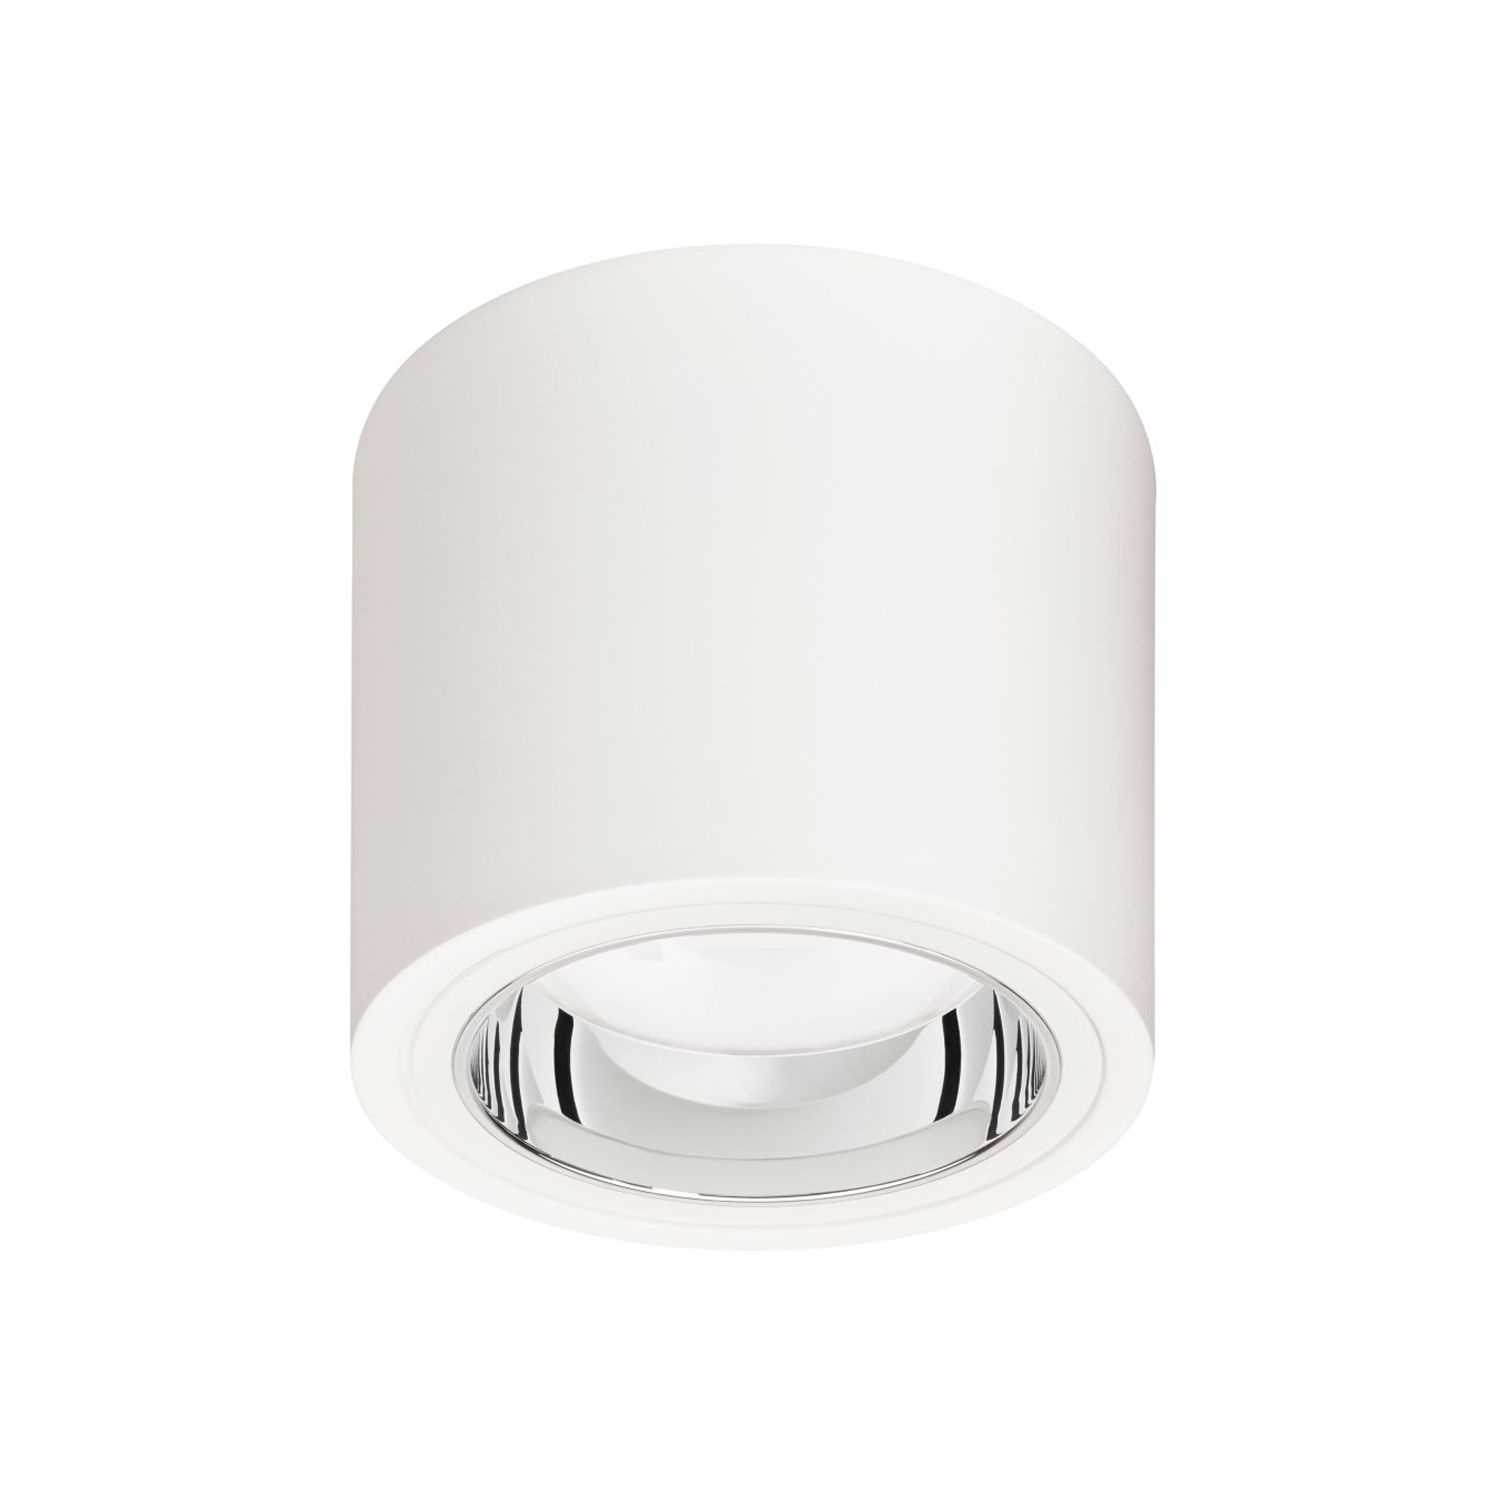 Philips LED Downlight LuxSpace Compact Low Height DN570C LED40S/840 4300lm IP20 PSD-VLC-E C Wit | Dali Dimbaar